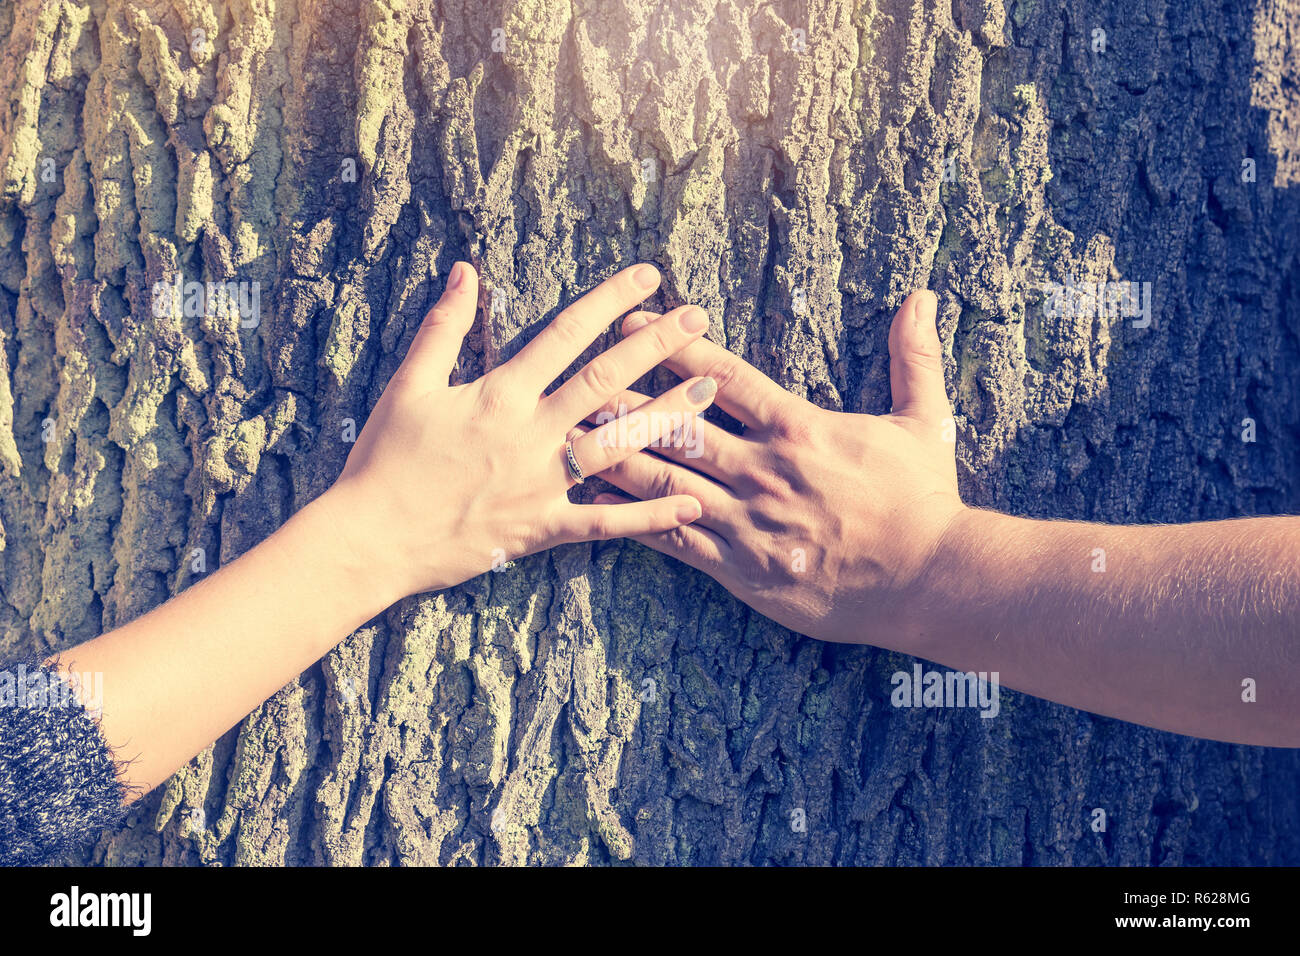 The hands of a man and a woman holding a cross on a tree trunk - Stock Image